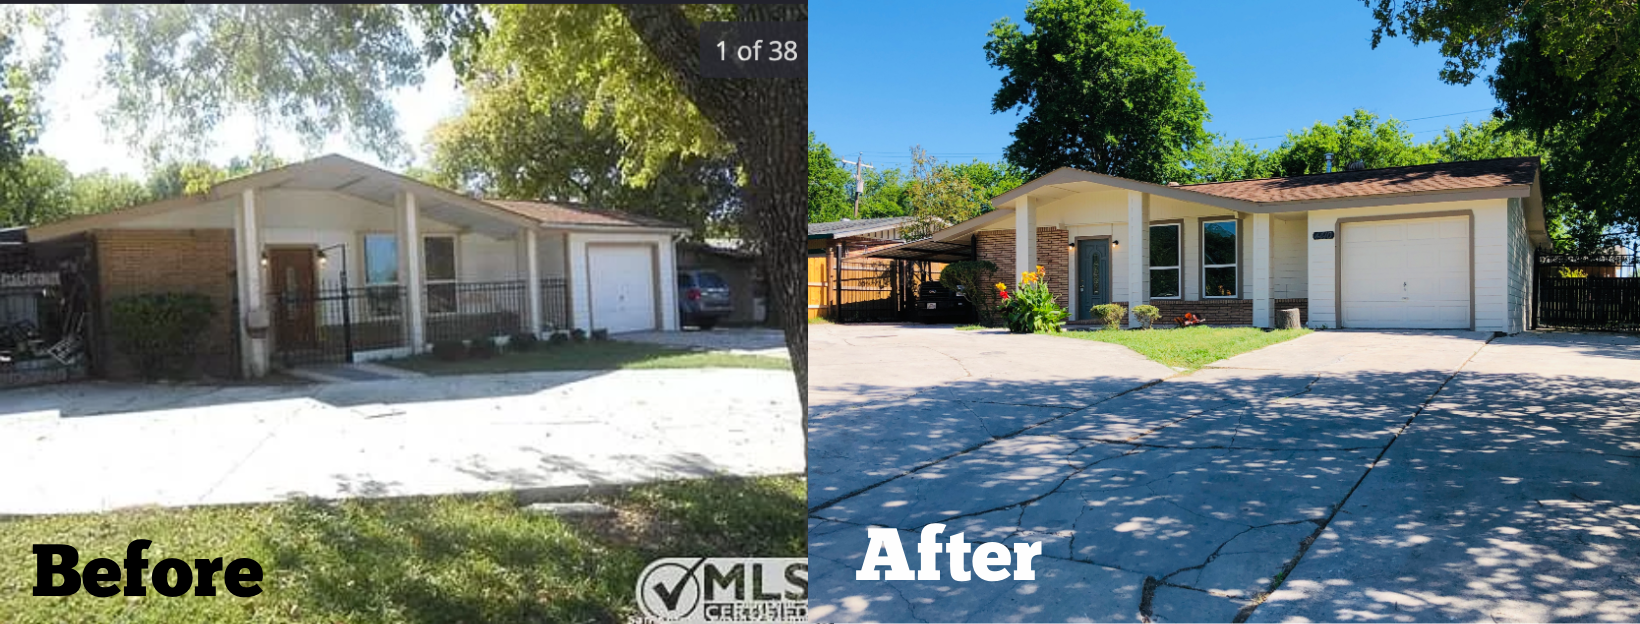 before and after rental property